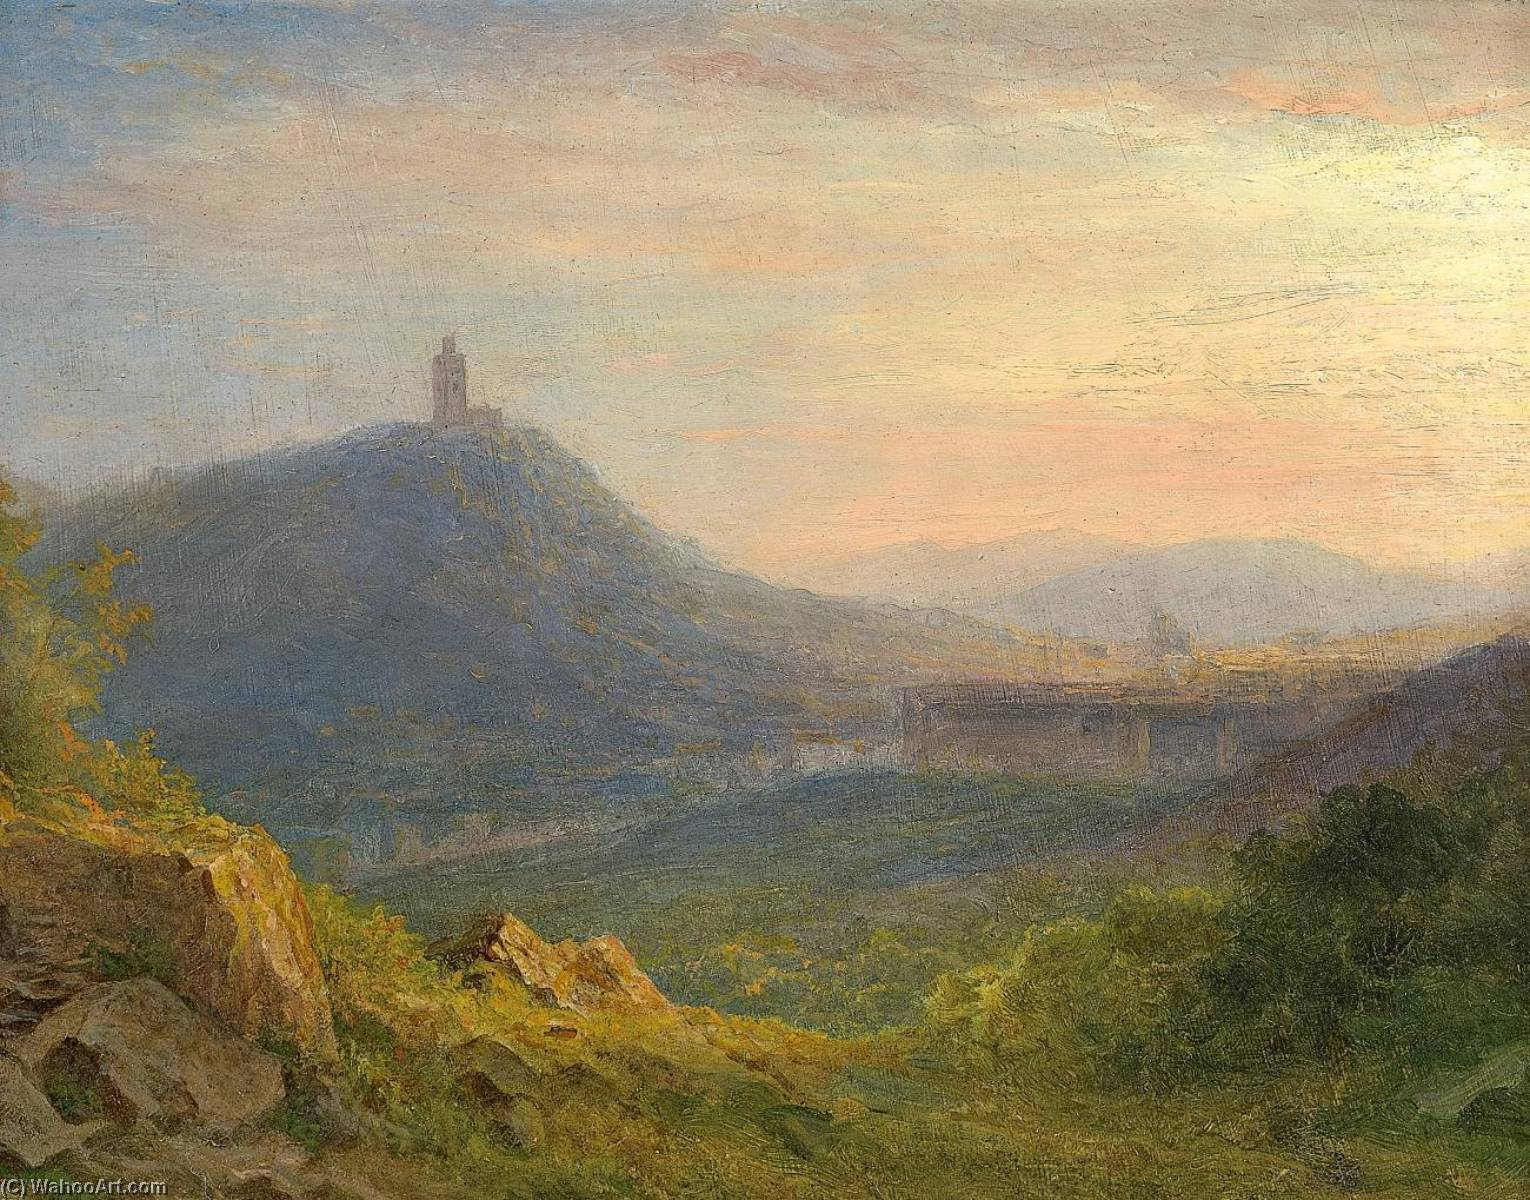 Hilly Landscape with a Castle Ruin by Carl Morgenstern | Oil Painting | ArtsDot.com